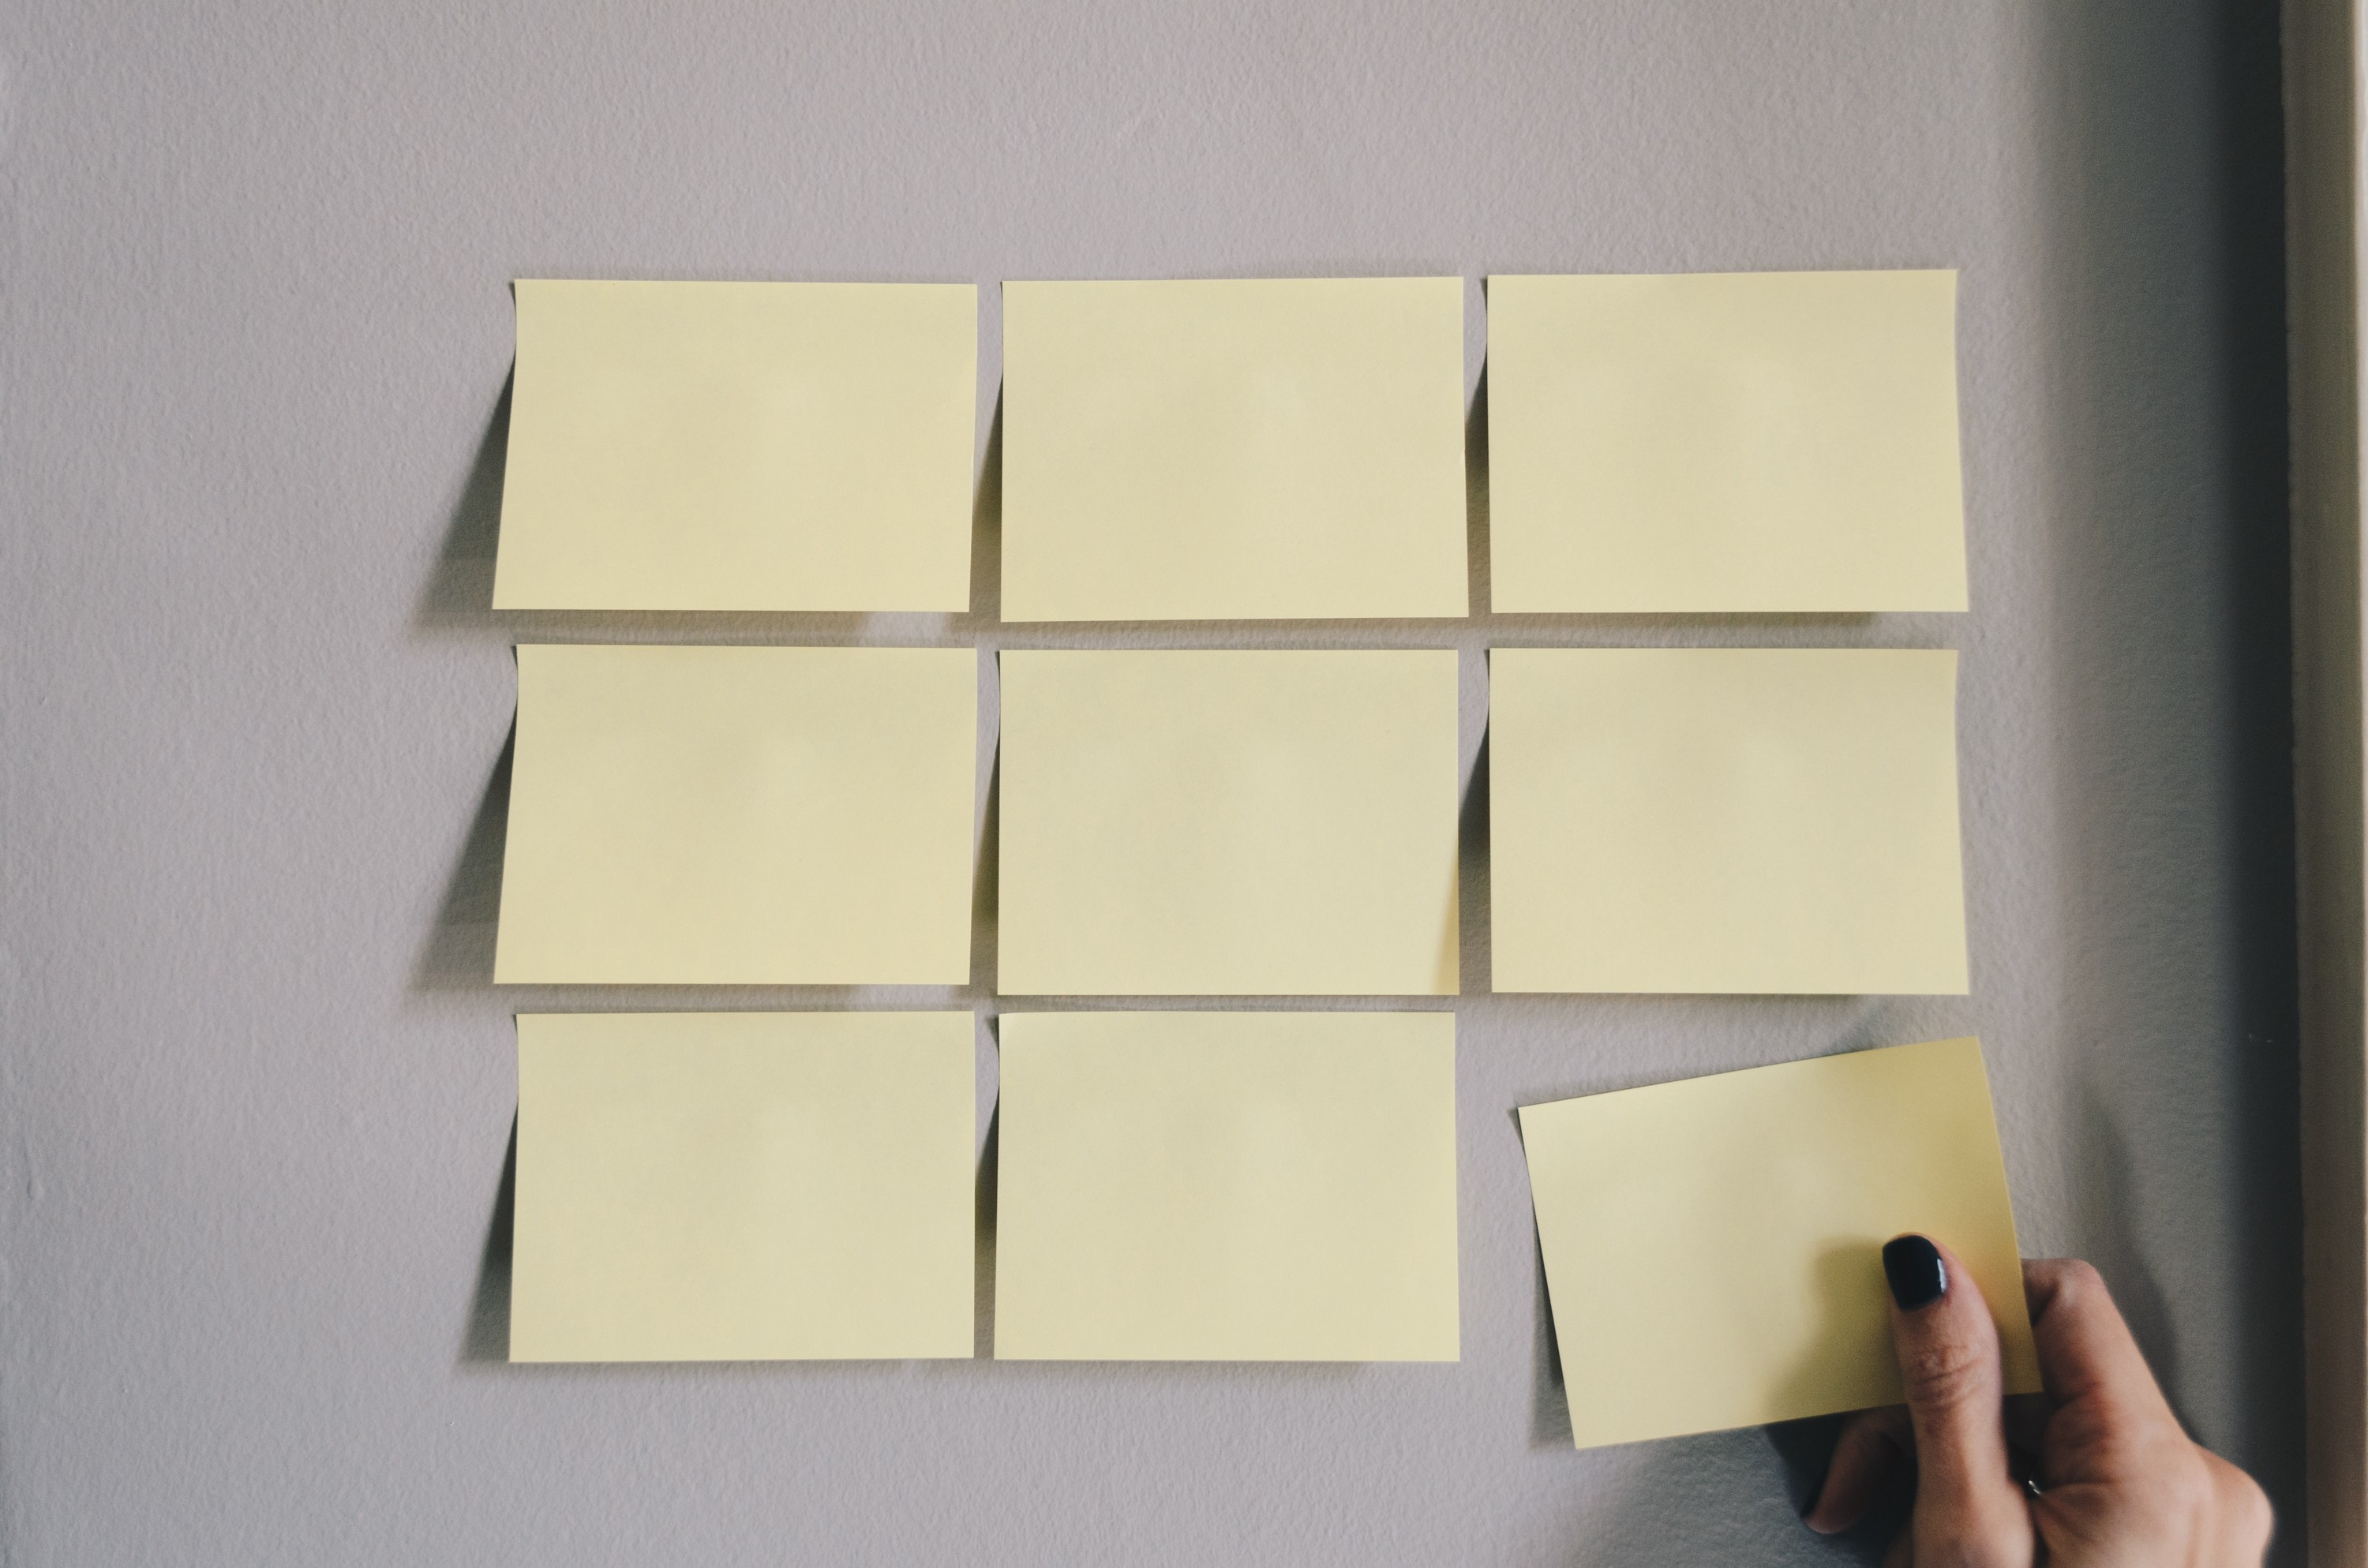 Nine Post-Its attached to the wall with a woman's hand grabbing one